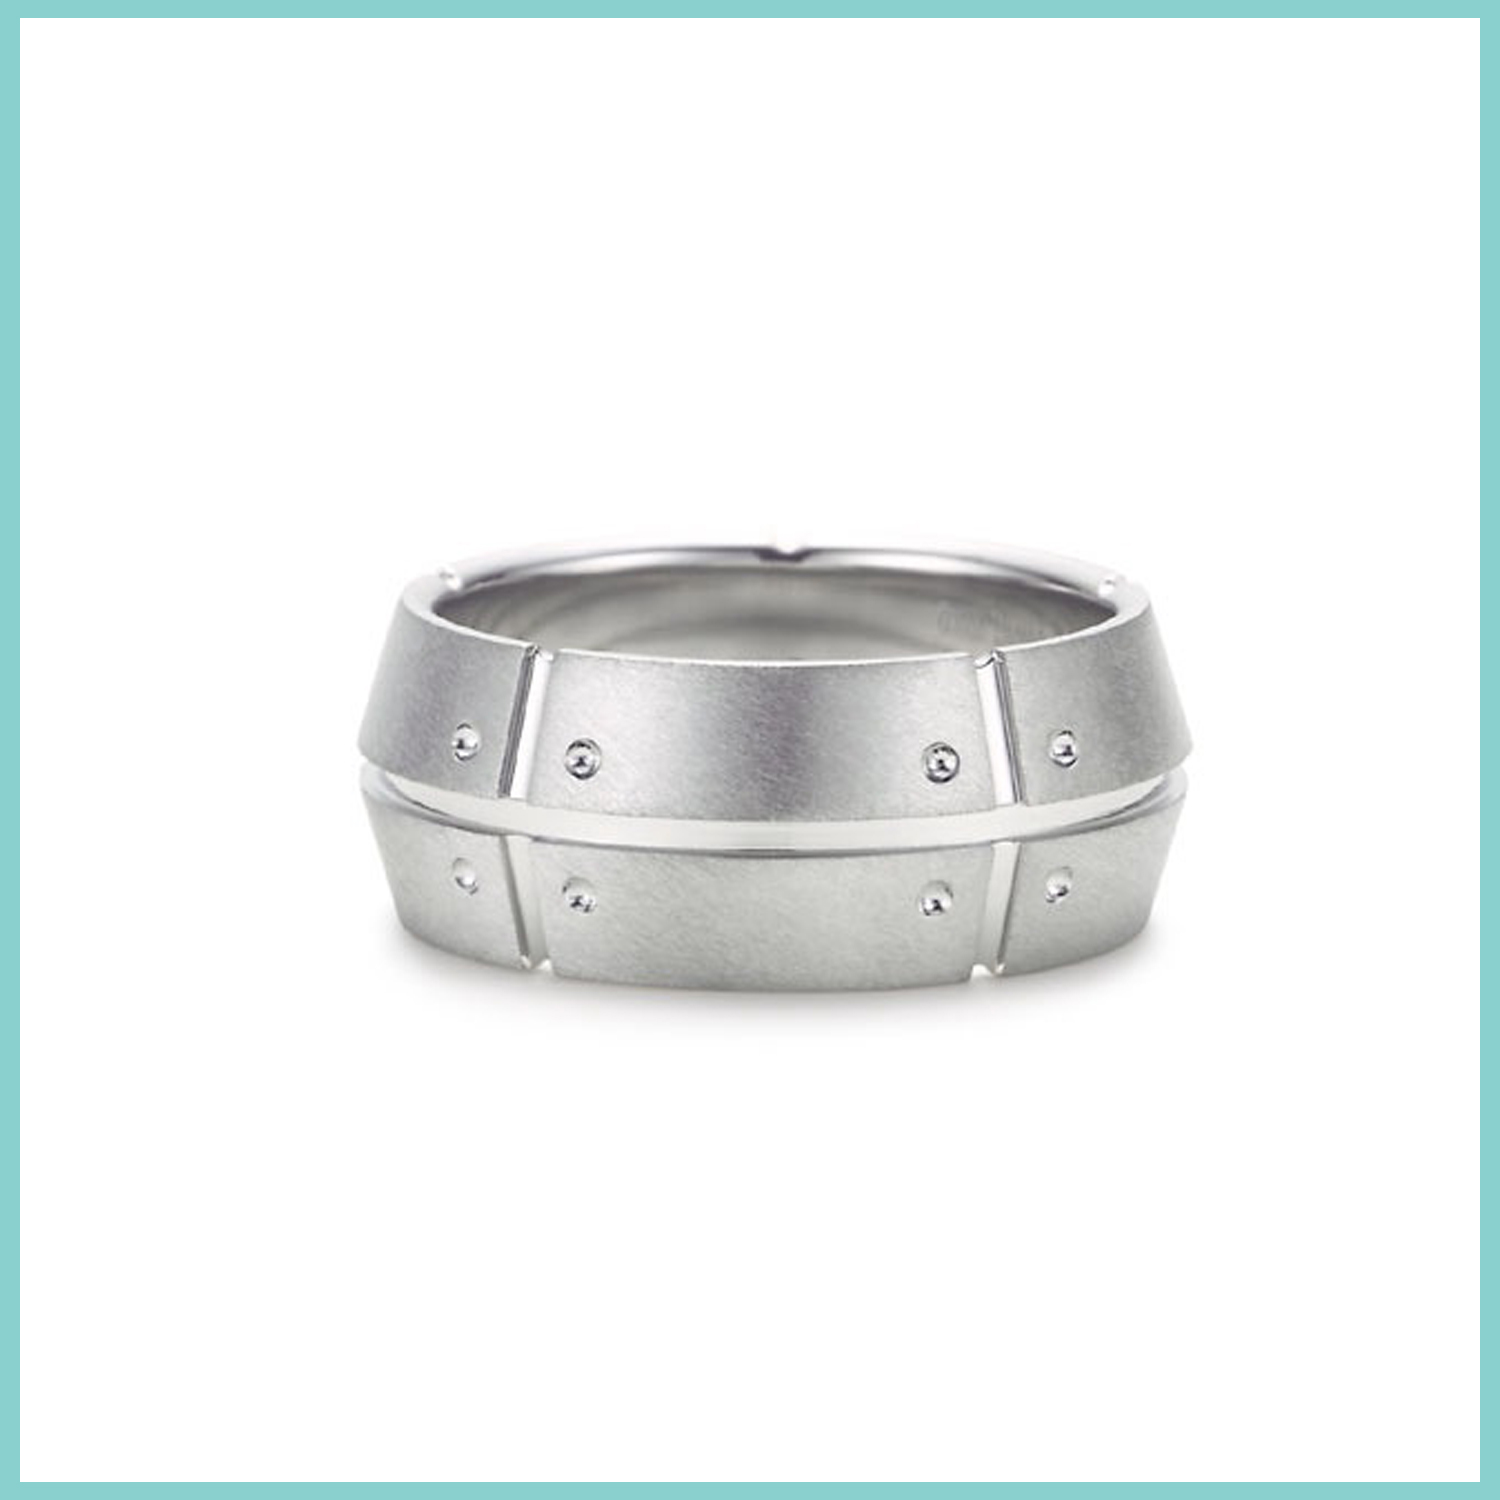 Tiffany and & Co. Streamerica 18k 750 Mens White Gold Double Ring rivets 2002 Wedding Band 2002 Standing